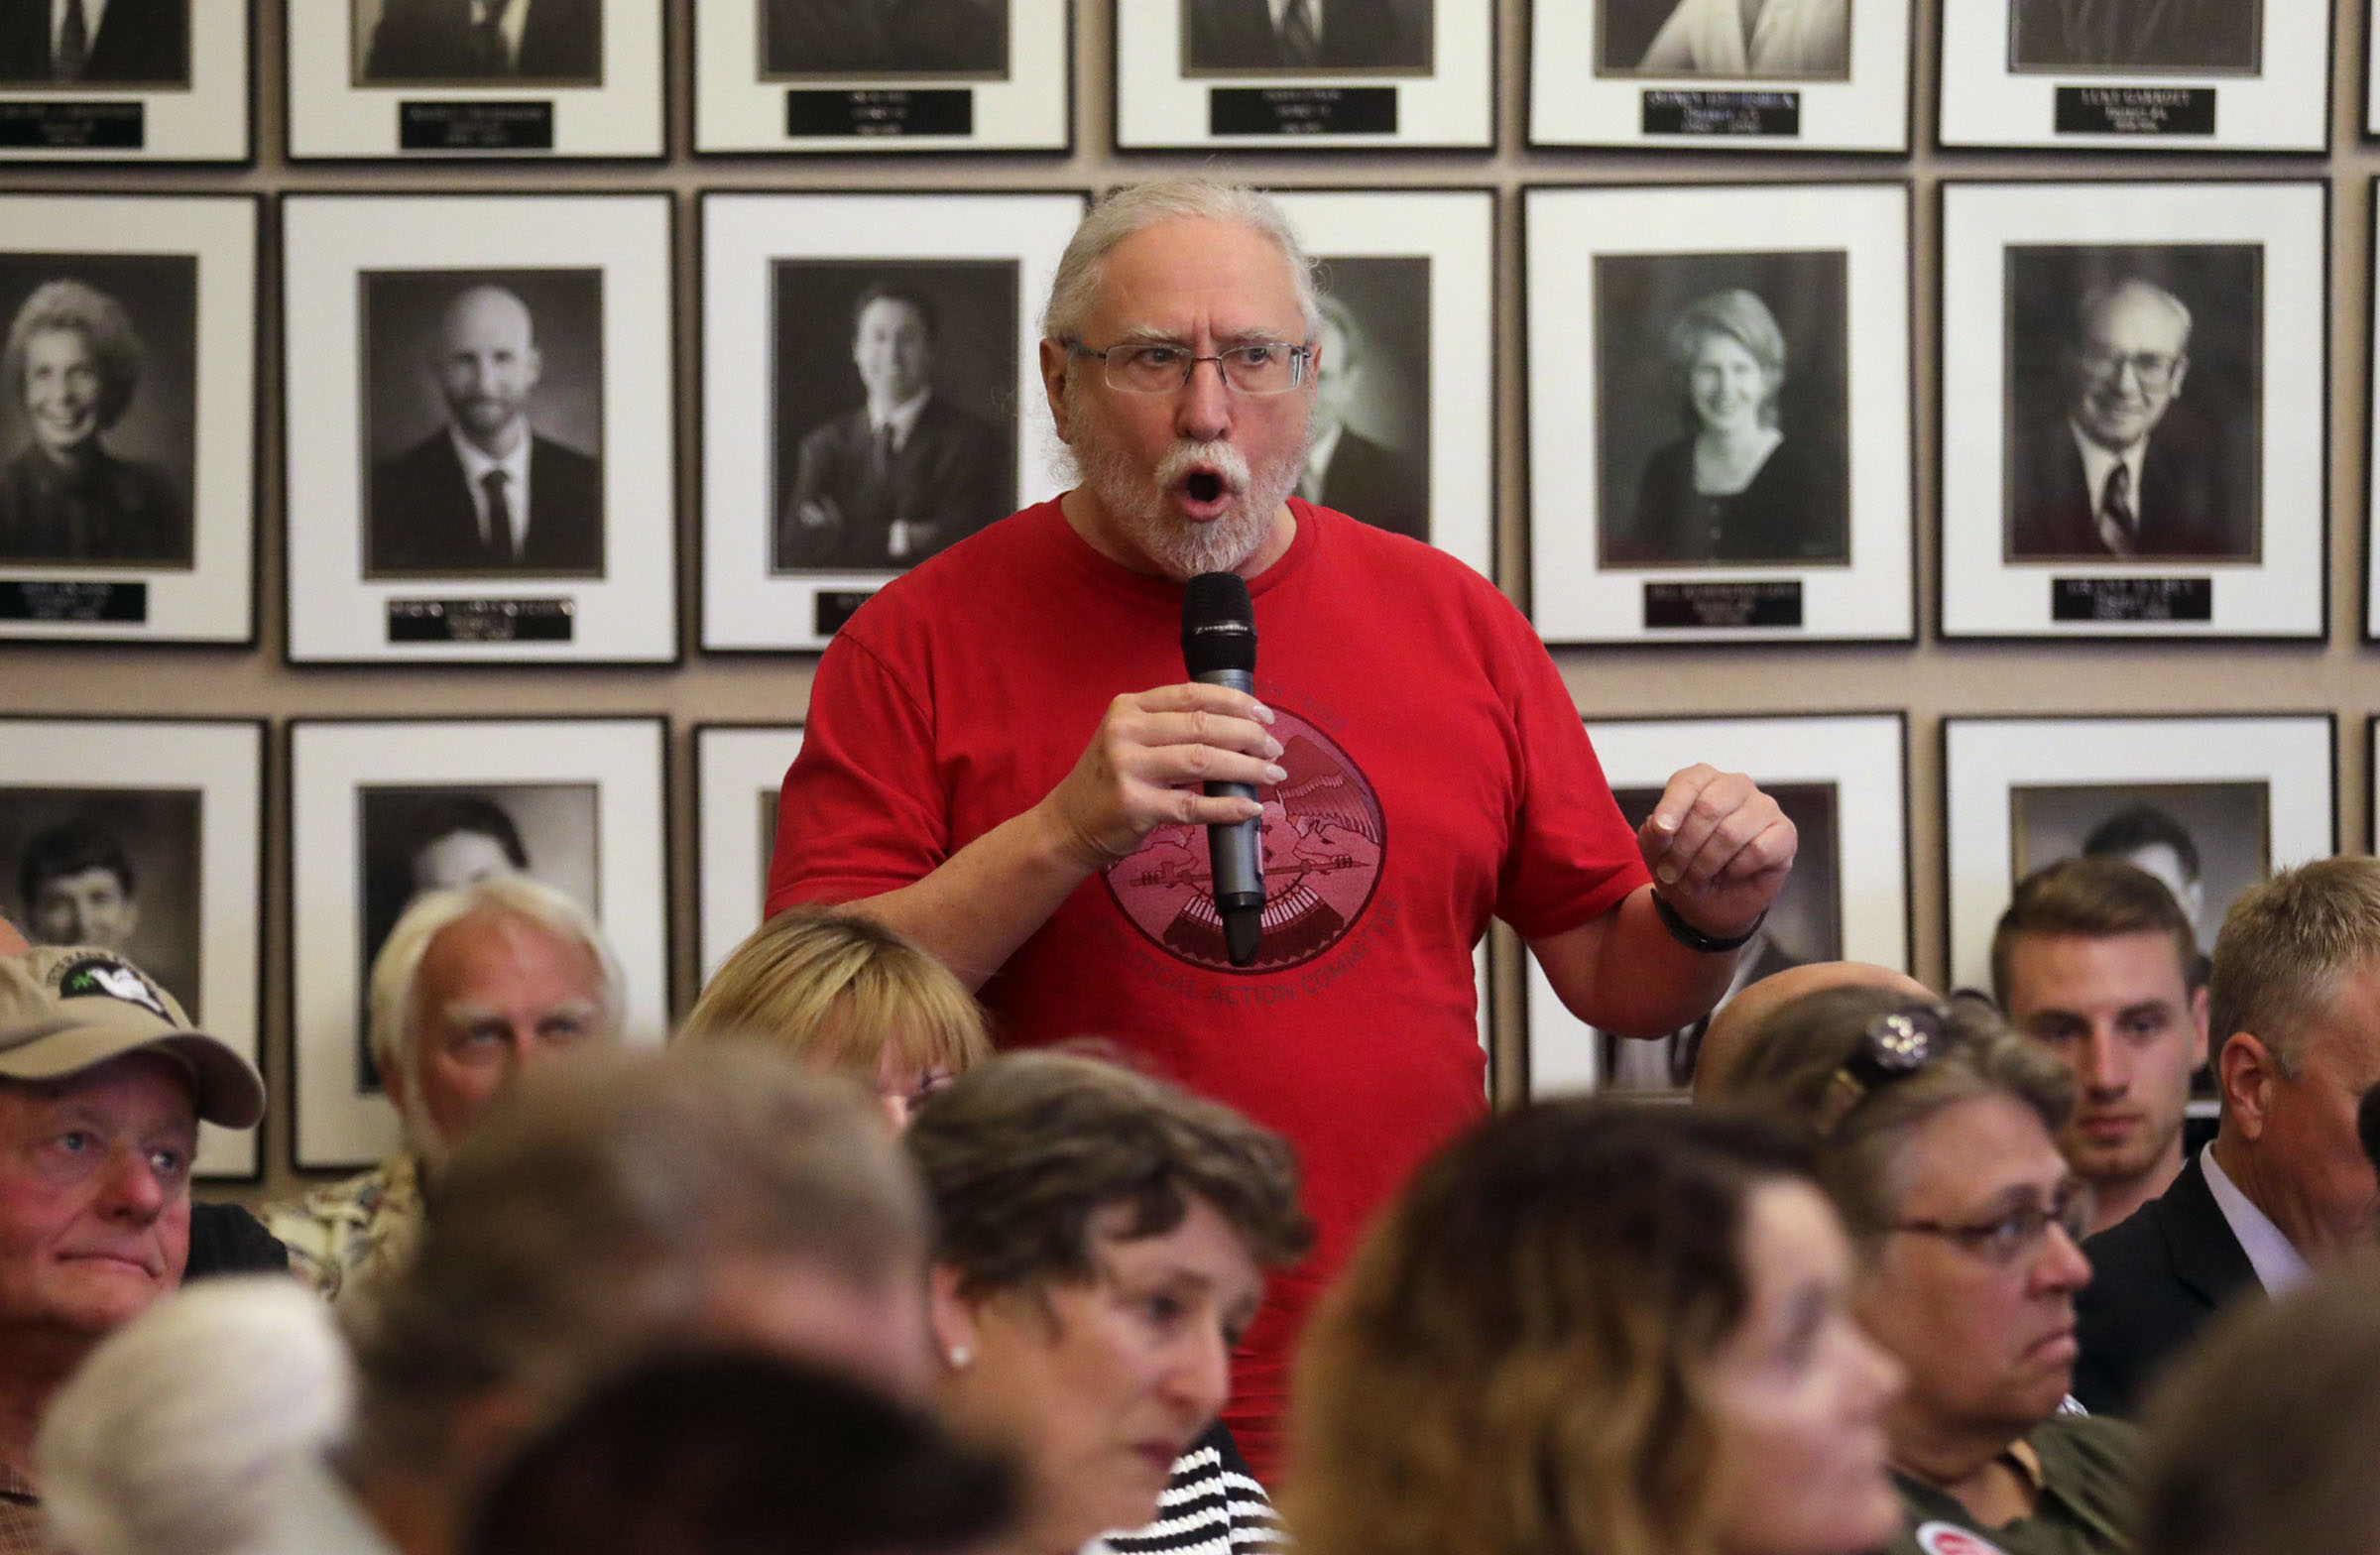 Clark Clements, former environmental scientist, speaks in opposition to a proposed property tax increment reimbursement of up to $28 million for development of an inland port during a Salt Lake City Council Redevelopment Agency meeting at the City-County Building in Salt Lake City on Tuesday, Aug. 20, 2019.